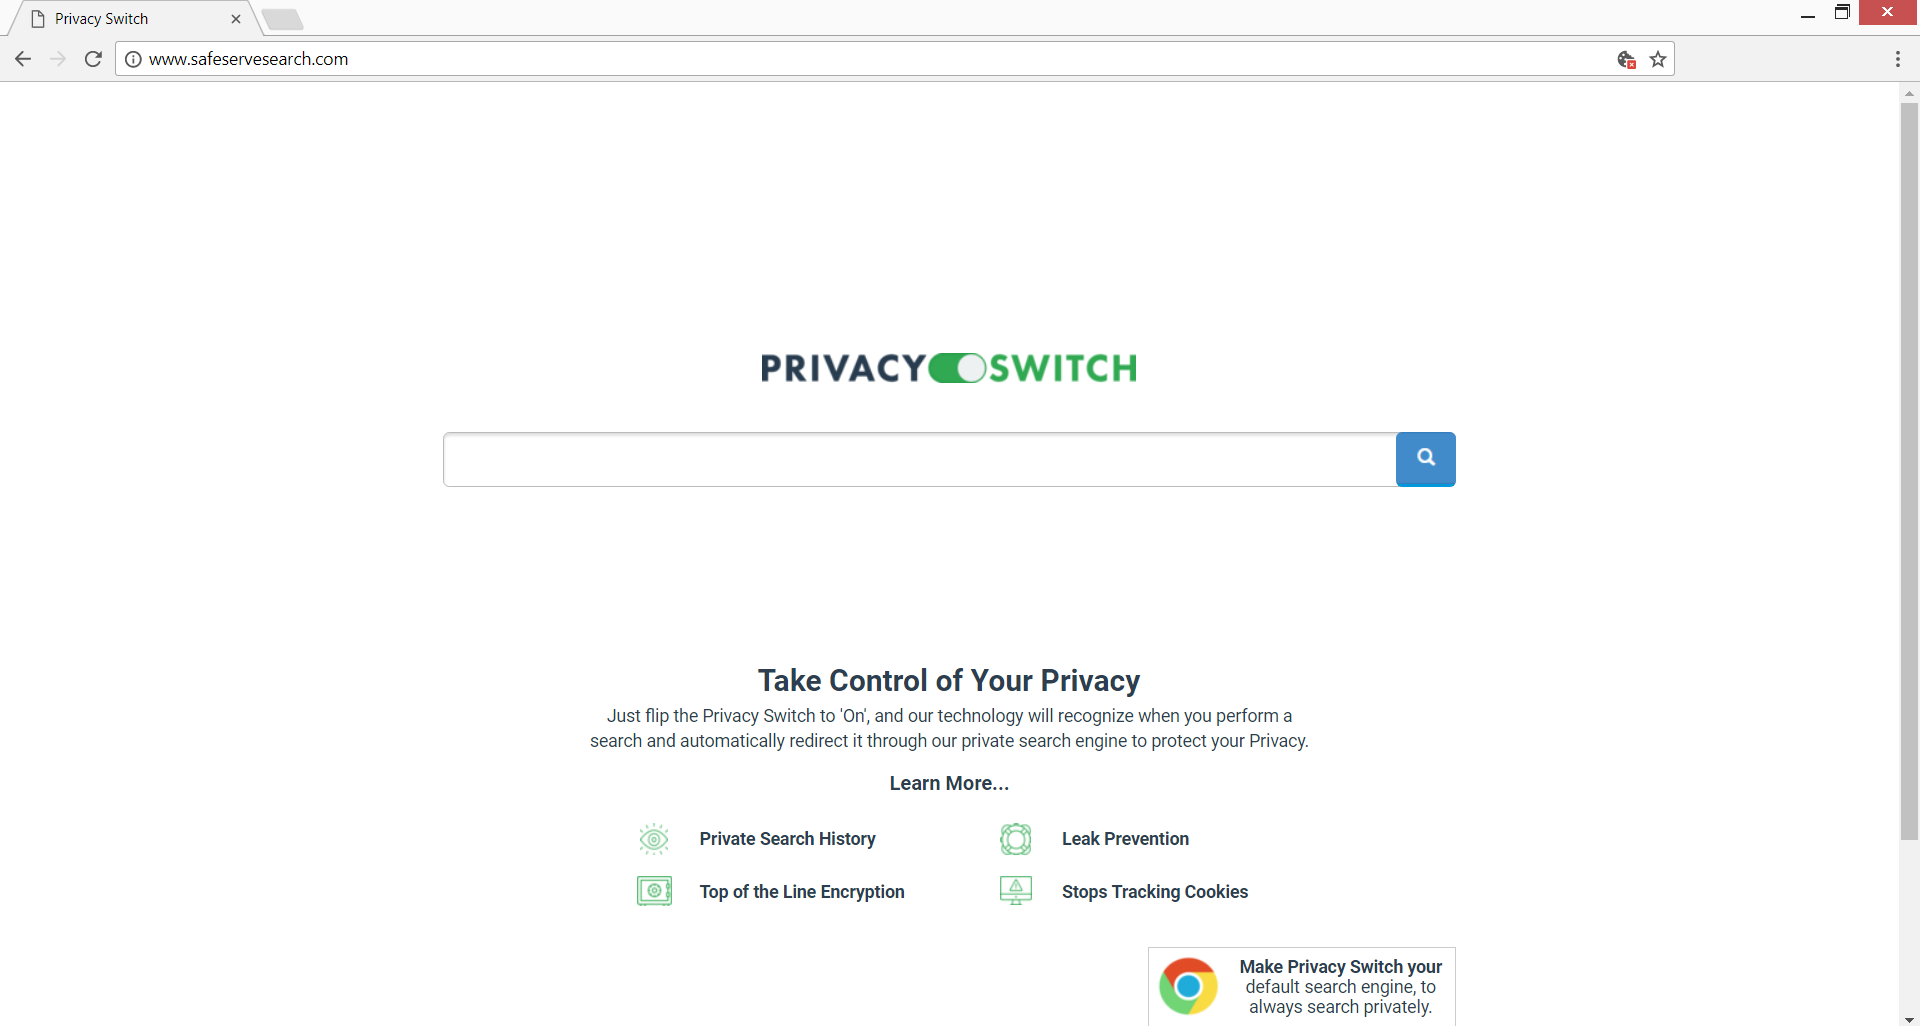 privacy switch safeservesearch.com hoax search engine stf